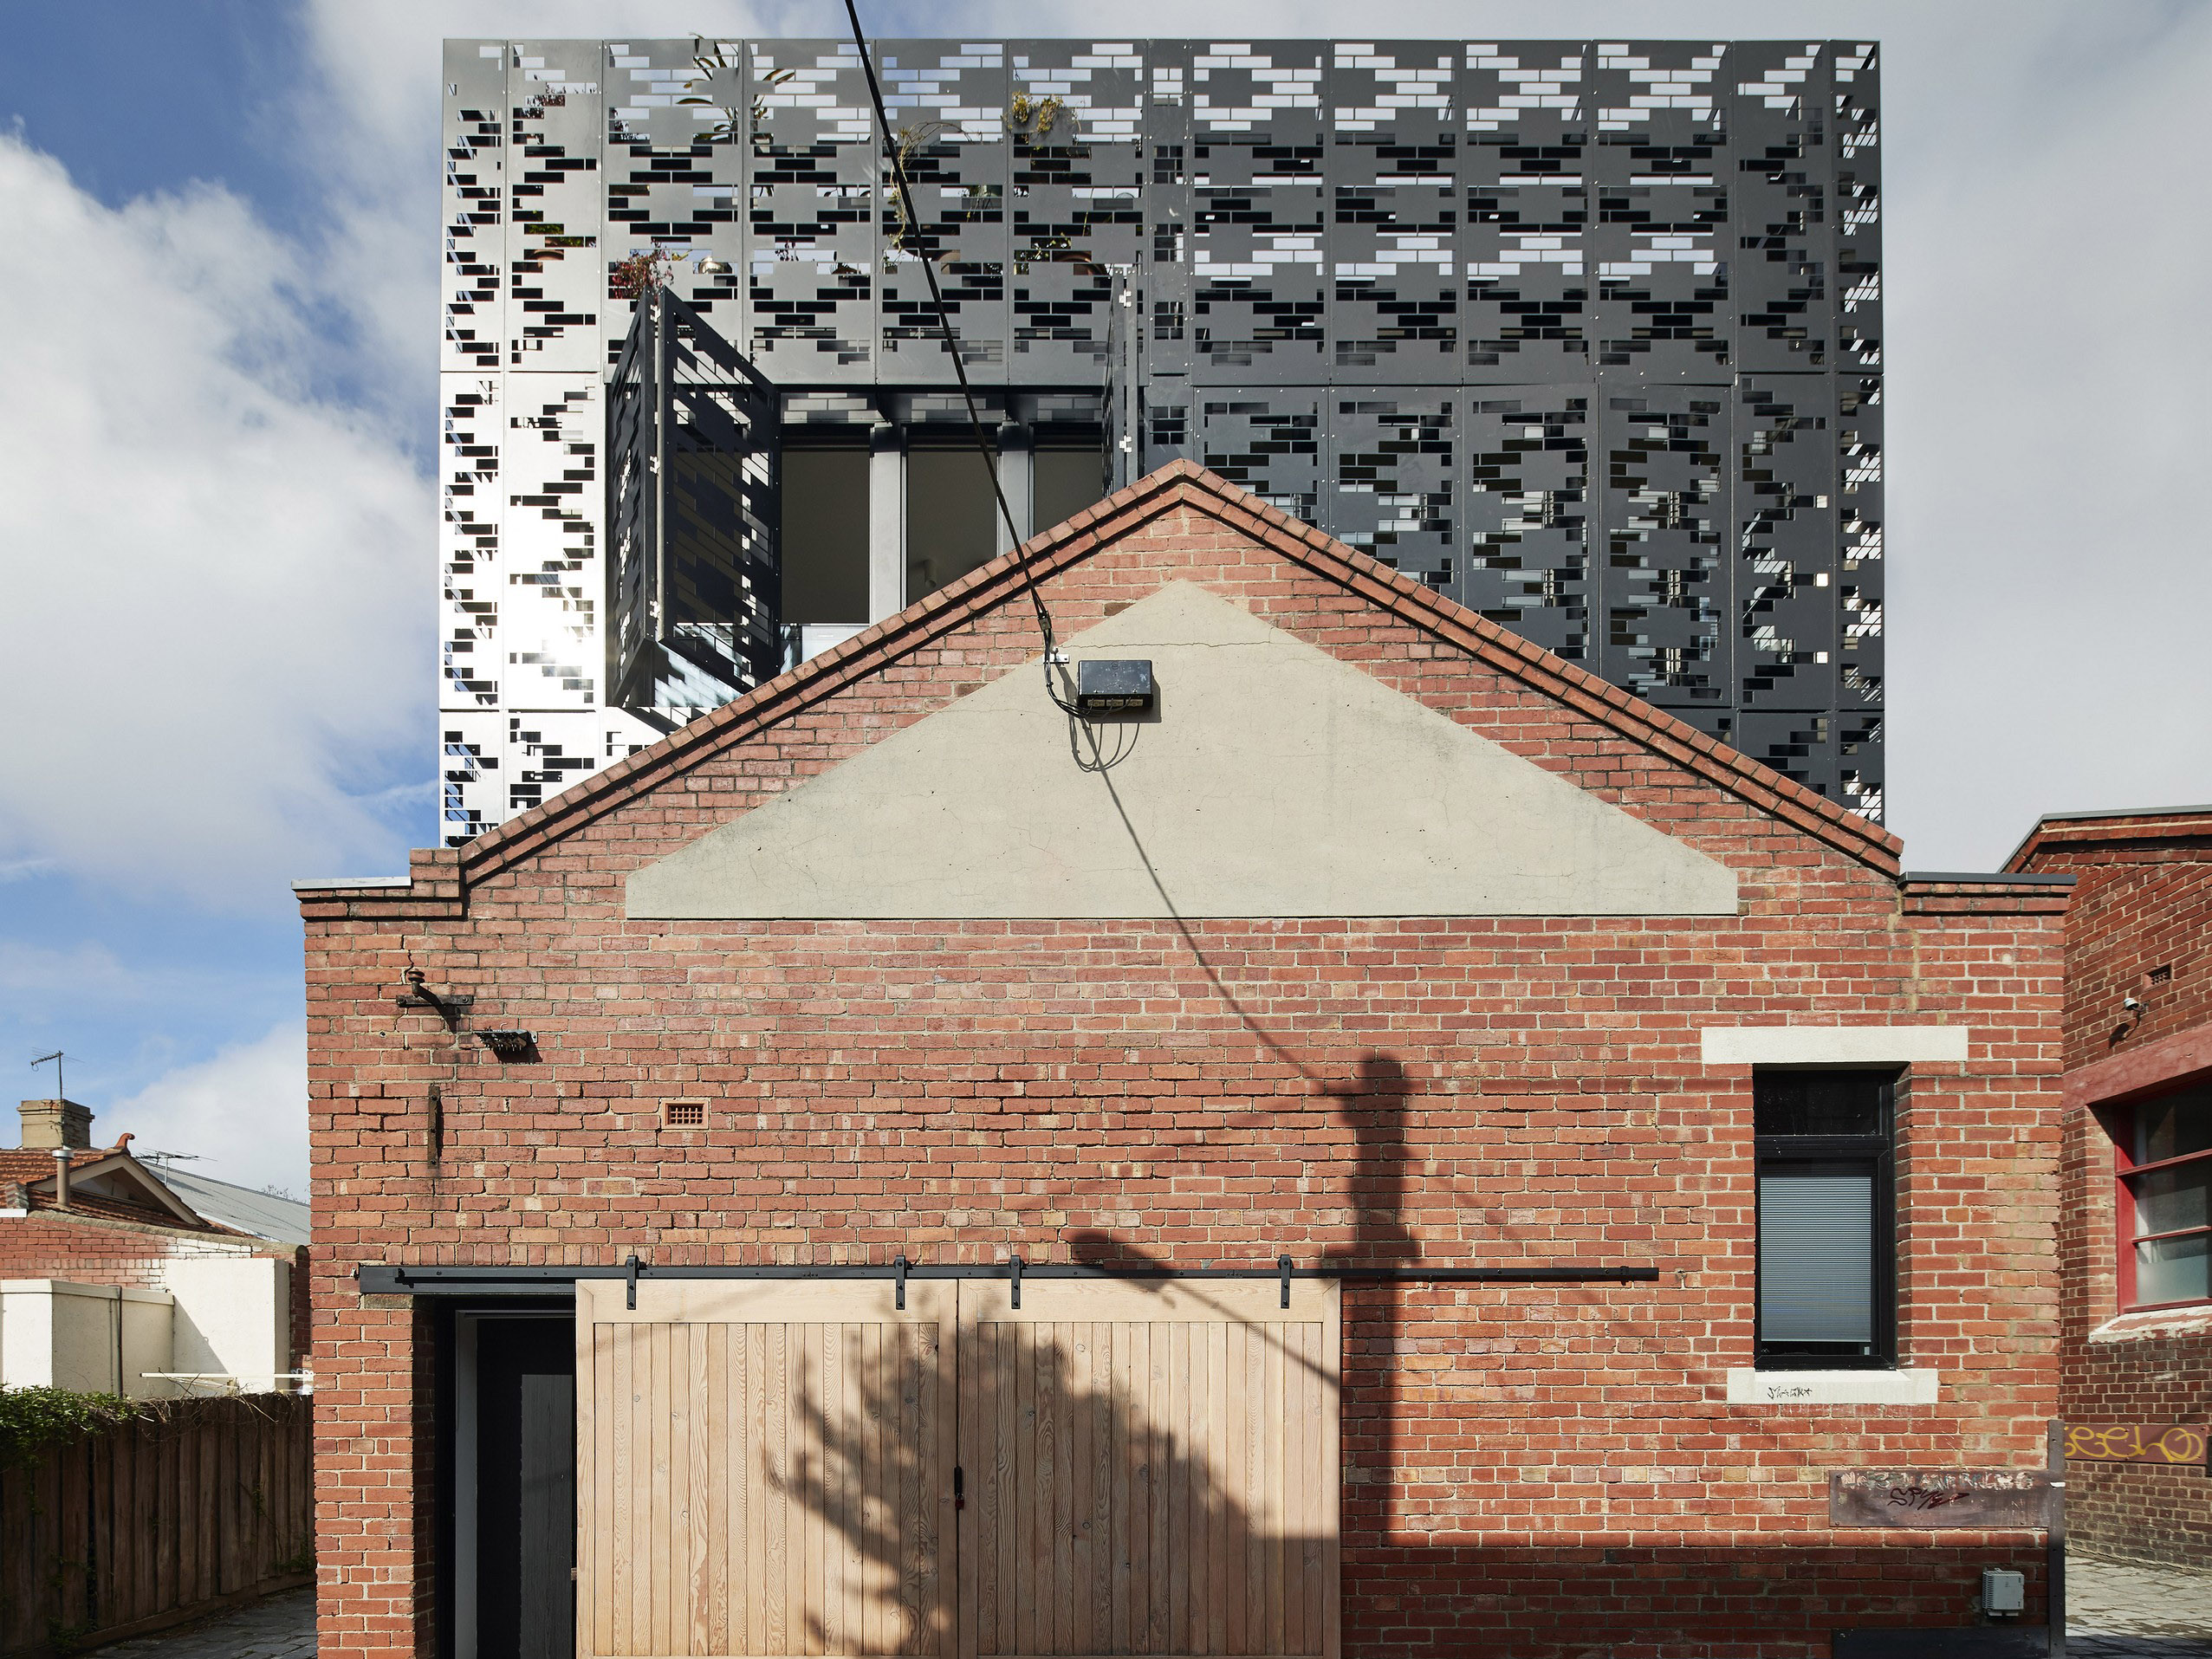 Celebrating industrial heritage in a new residential development